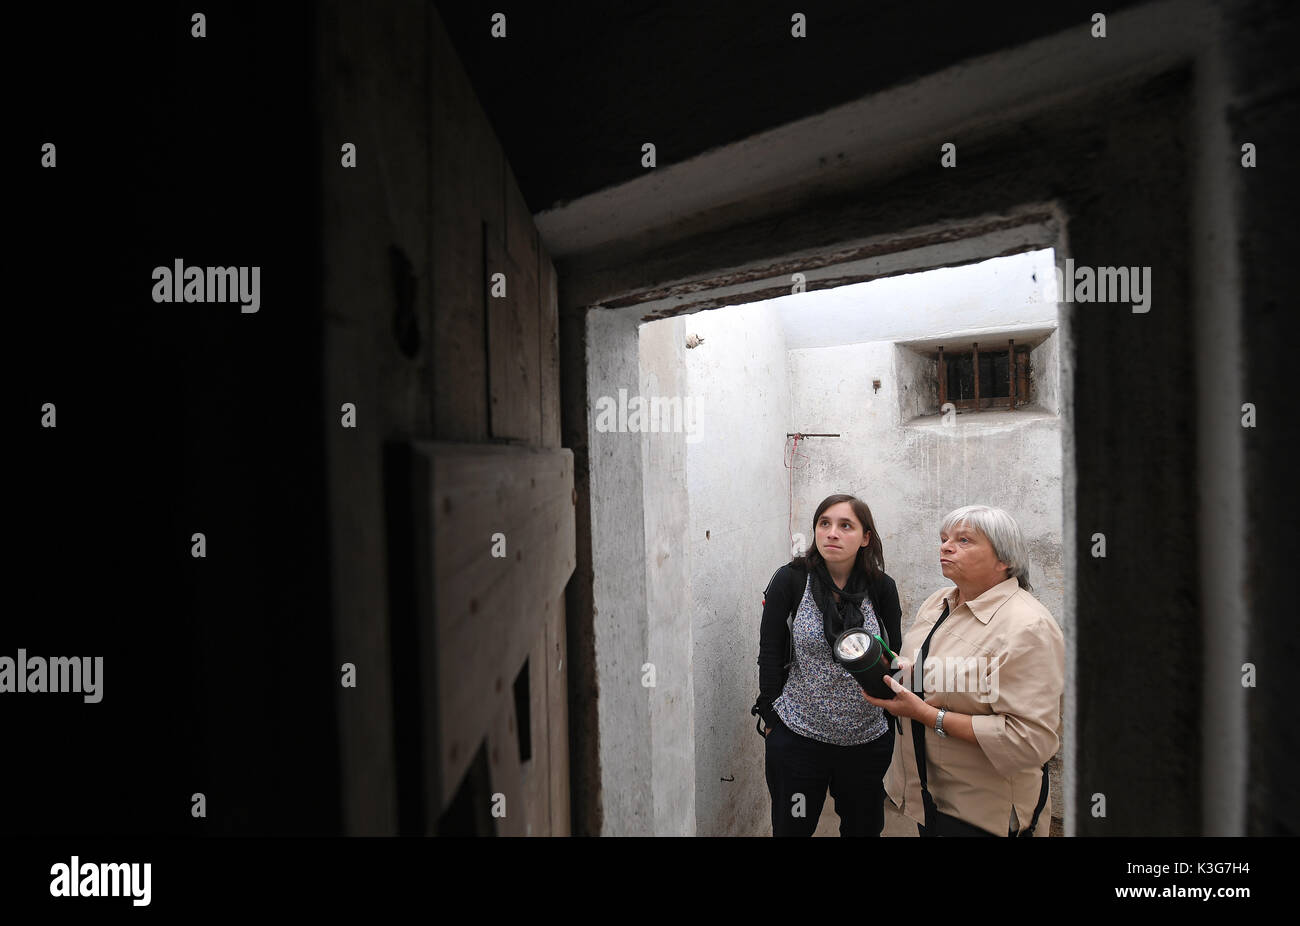 Frankenberg, Germany. 23rd Aug, 2071. FILE - Archival material shows Gisela Heiden (R) and Anna Schueller using torches to look at inscriptions in a cell in the former concentration camp Sachsenburg in Frankenberg, Germany, 23 August 2071. The Nazi organisations SA and SS imprisoned more than 2000 critics of the regime in the former spinning mill between 1933 and 1937. The political parties Die Linke (Left Party) and Die Gruenne (Alliance 90/The Greens) plan to transform the factory into a memorial. Photo: Hendrik Schmidt/dpa-Zentralbild/ZB/dpa/Alamy Live News - Stock Image